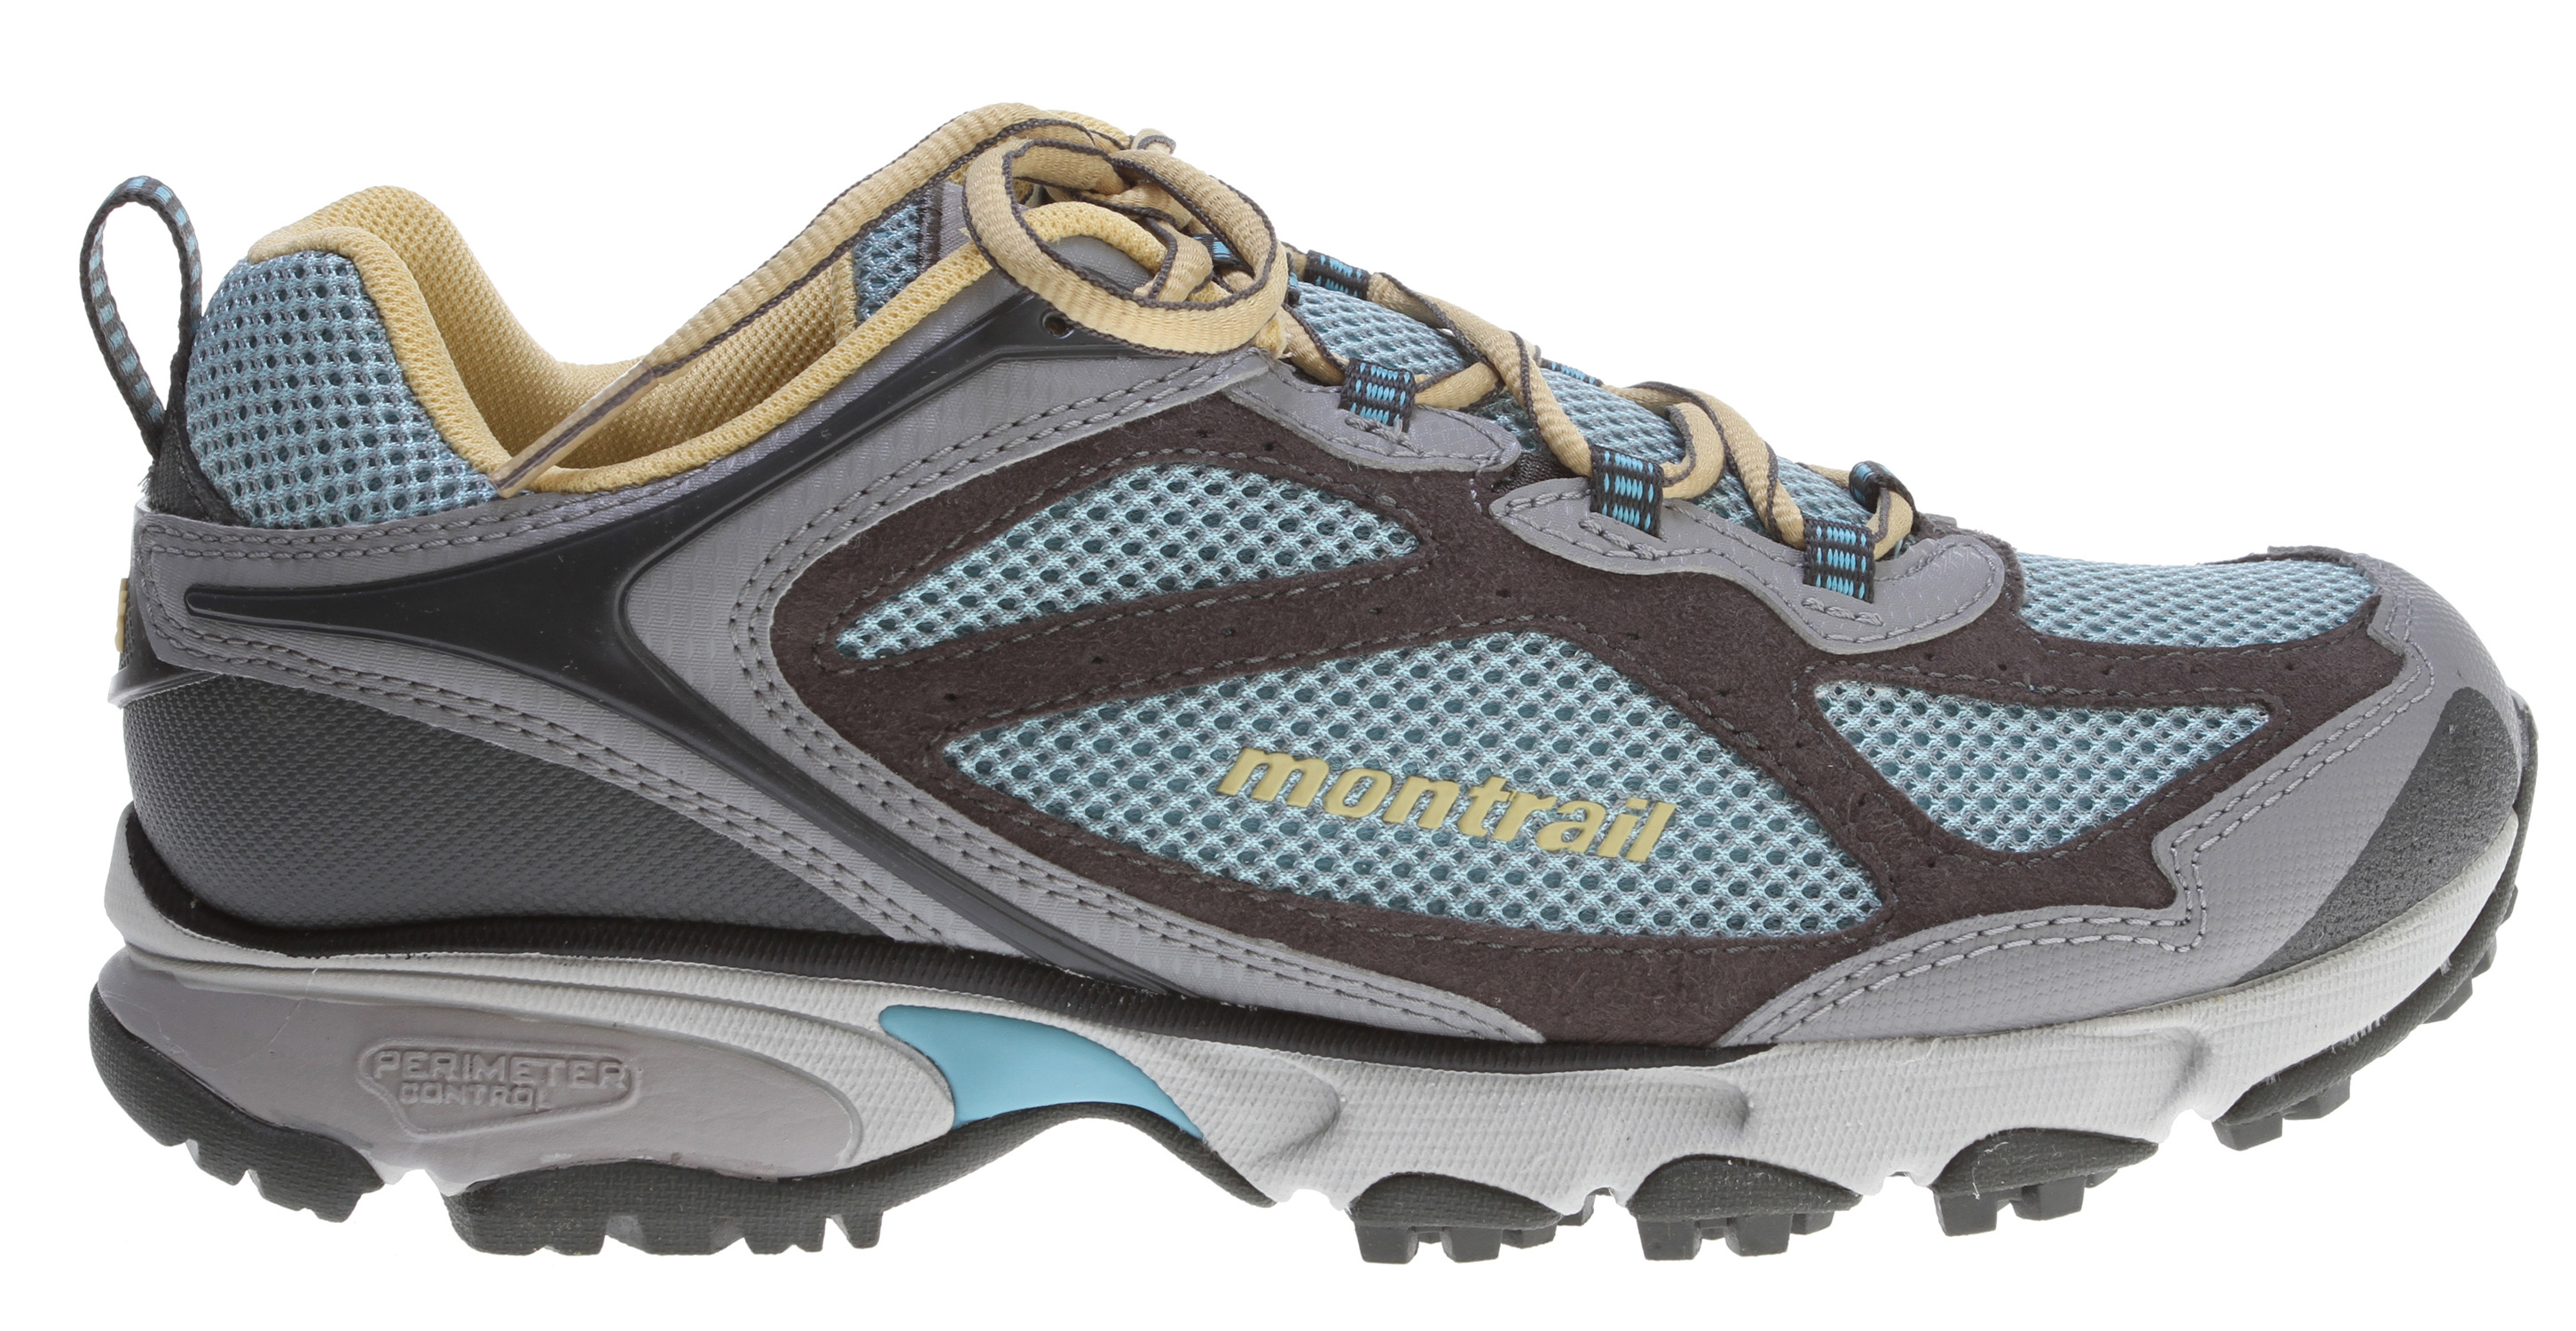 Camp and Hike Performance running shoe built for stability and protection on the trail.Key Features of the Montrail Sabino Trail Hiking Shoes:  Weight: 10.3 oz / 291 g  Durometer: Medial Post 68 Asker C / 58 Asker C ( /-3 degrees   Fit Notes: Wider forefoot - $59.95